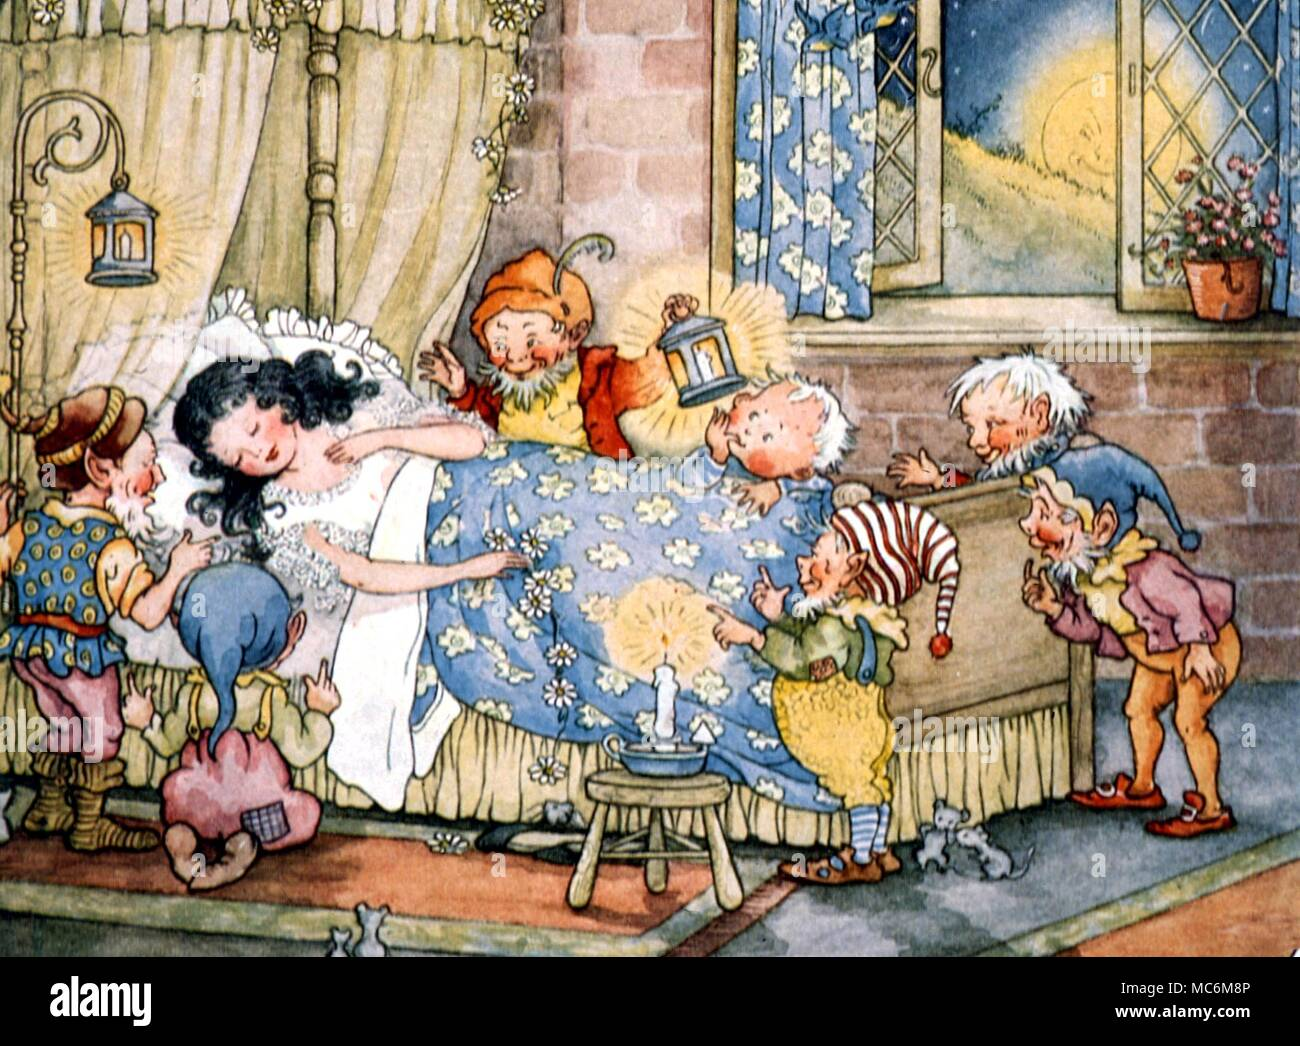 FAIRY STORIES - SNOW WHITE  The Seven Dwarves are delighted